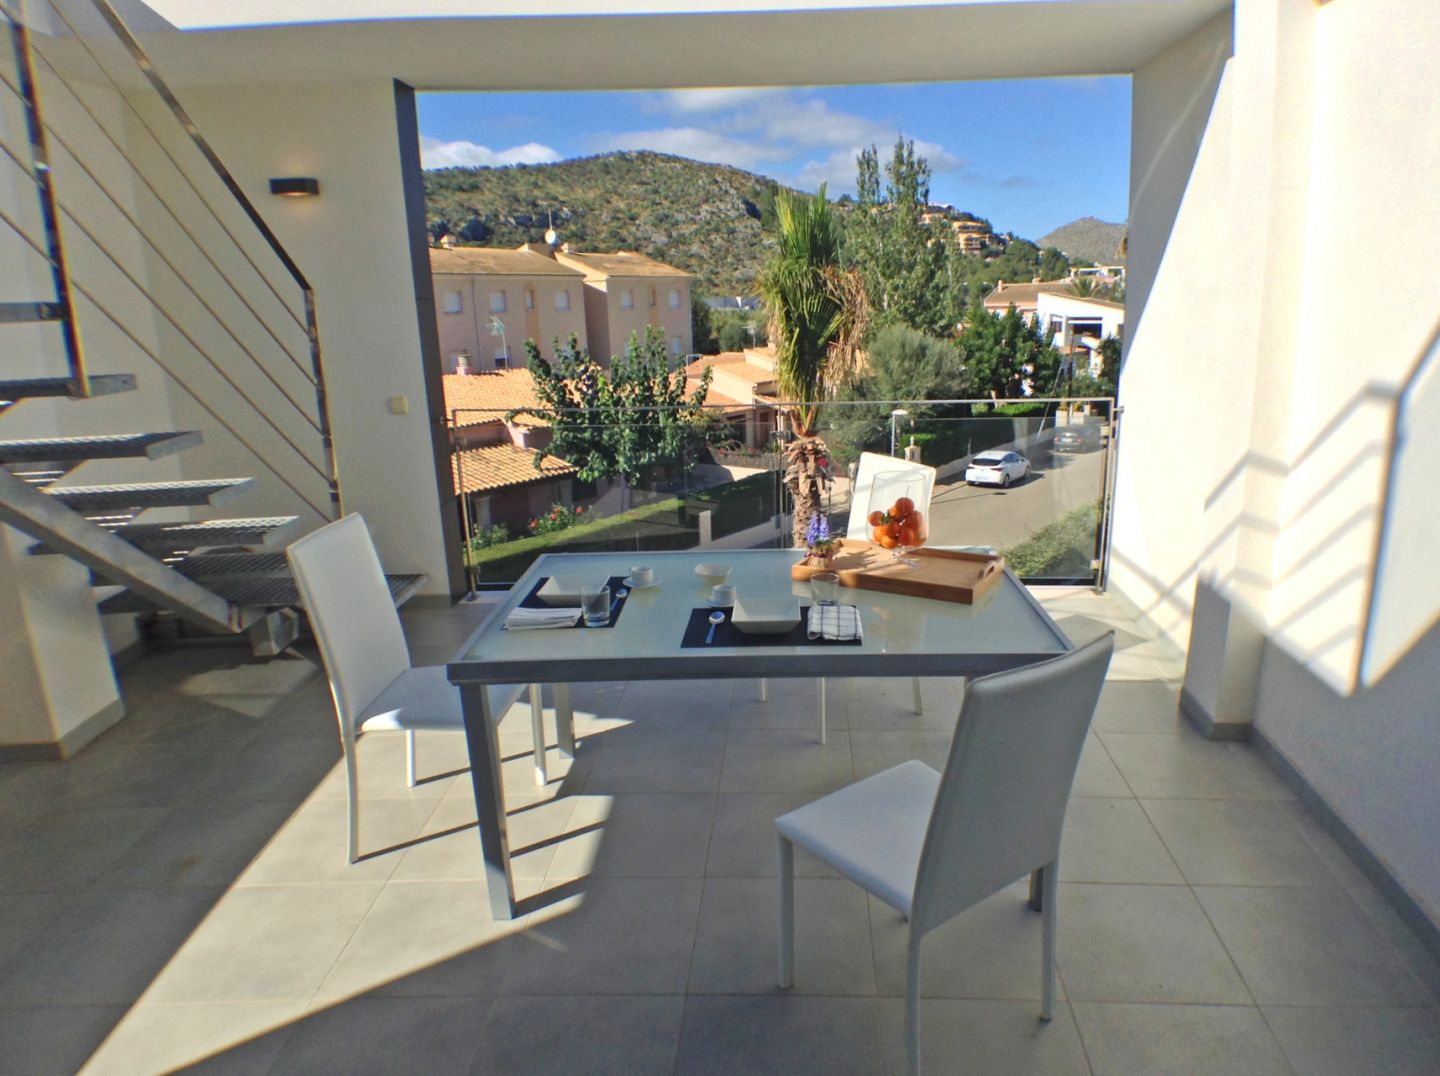 3 Bed Duplex for sale in PUERTO POLLENSA 4